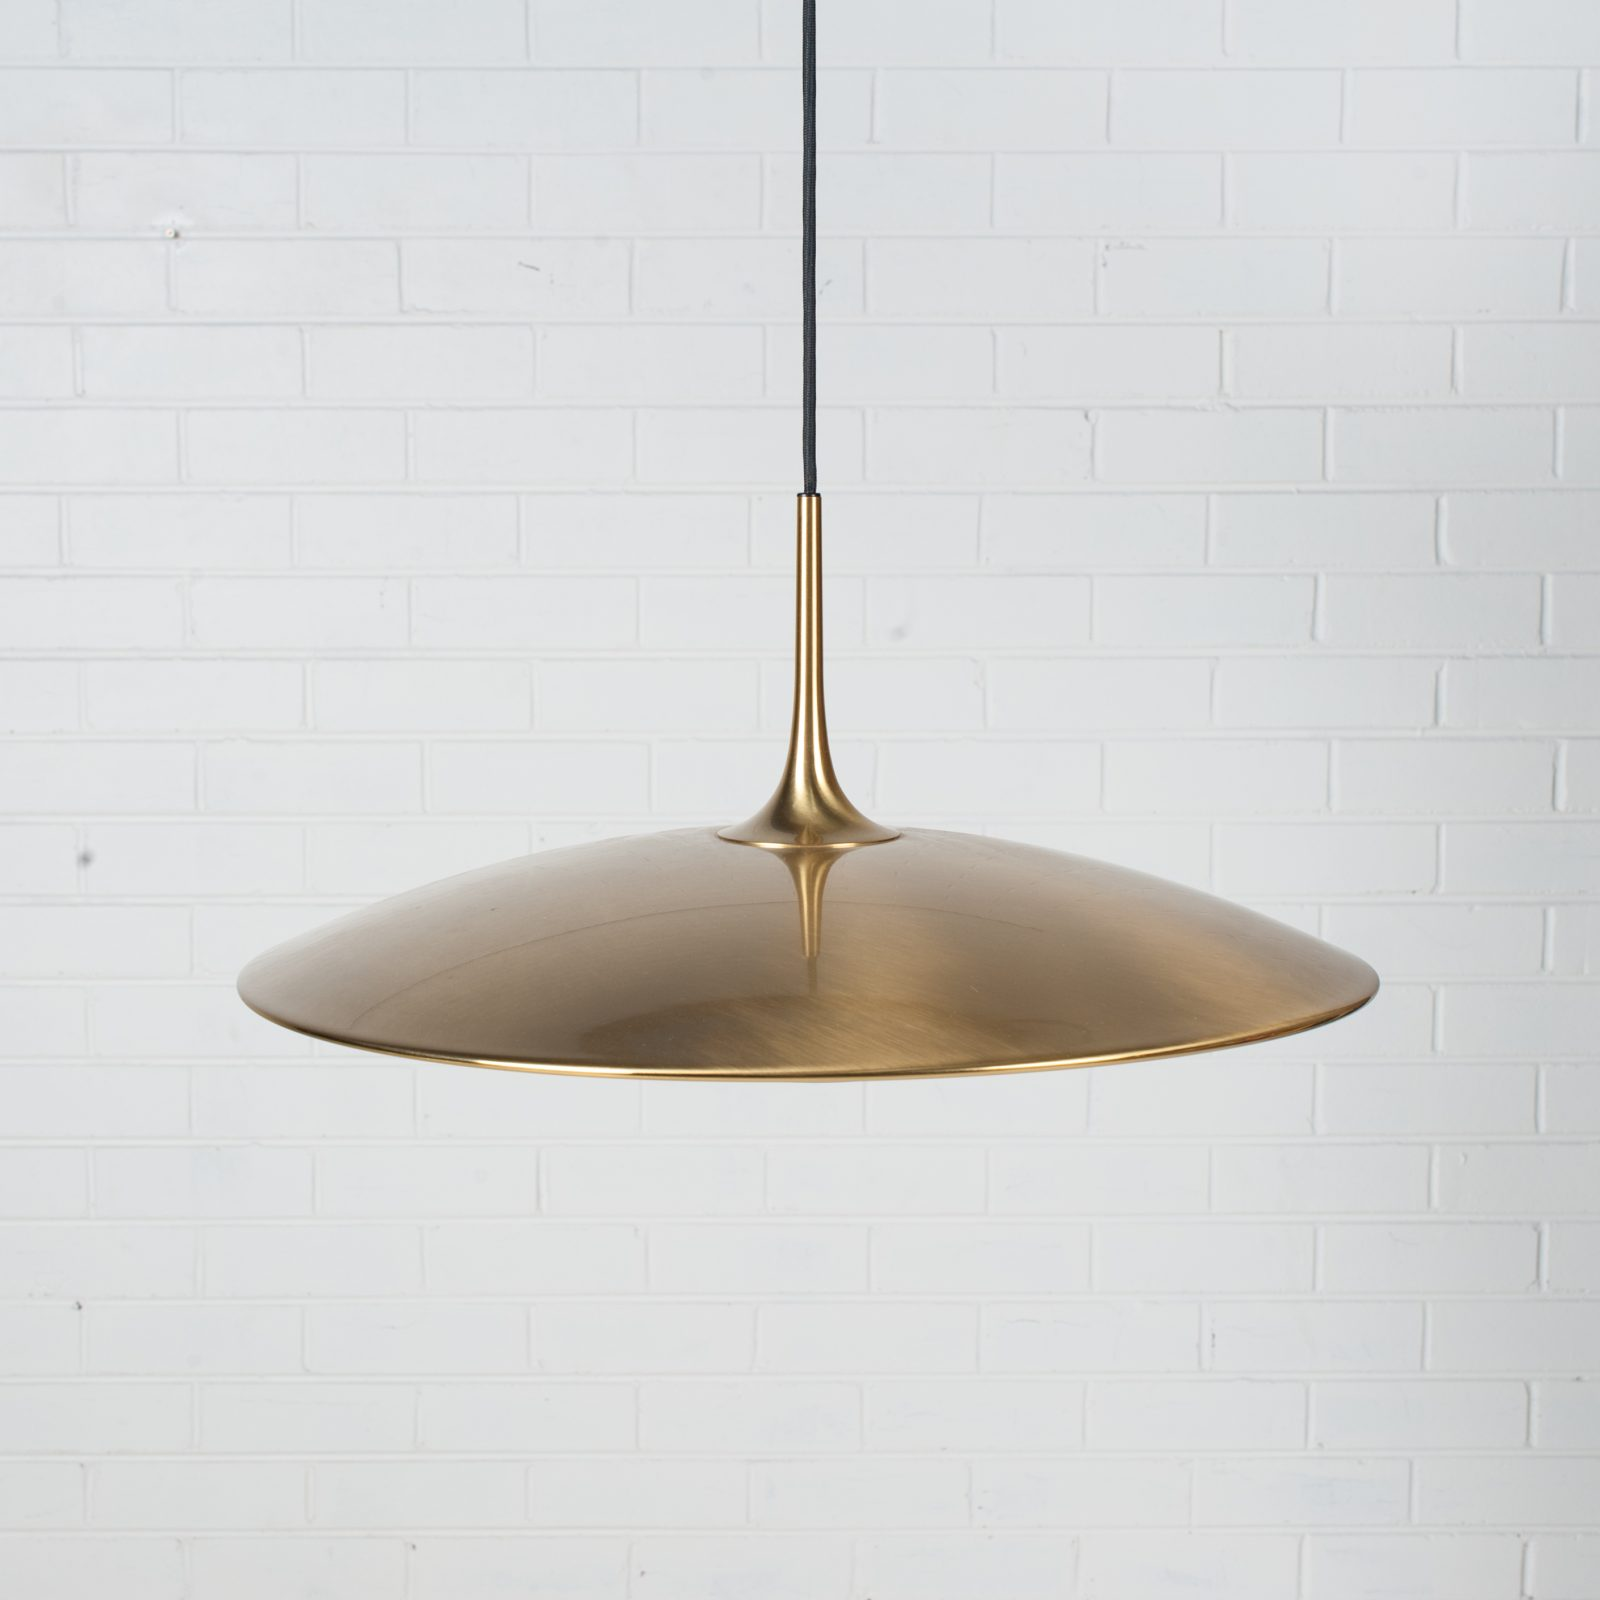 Onos 55 Counterbalance Pendant By Florian Schulz In Brass 1970s Germany 02